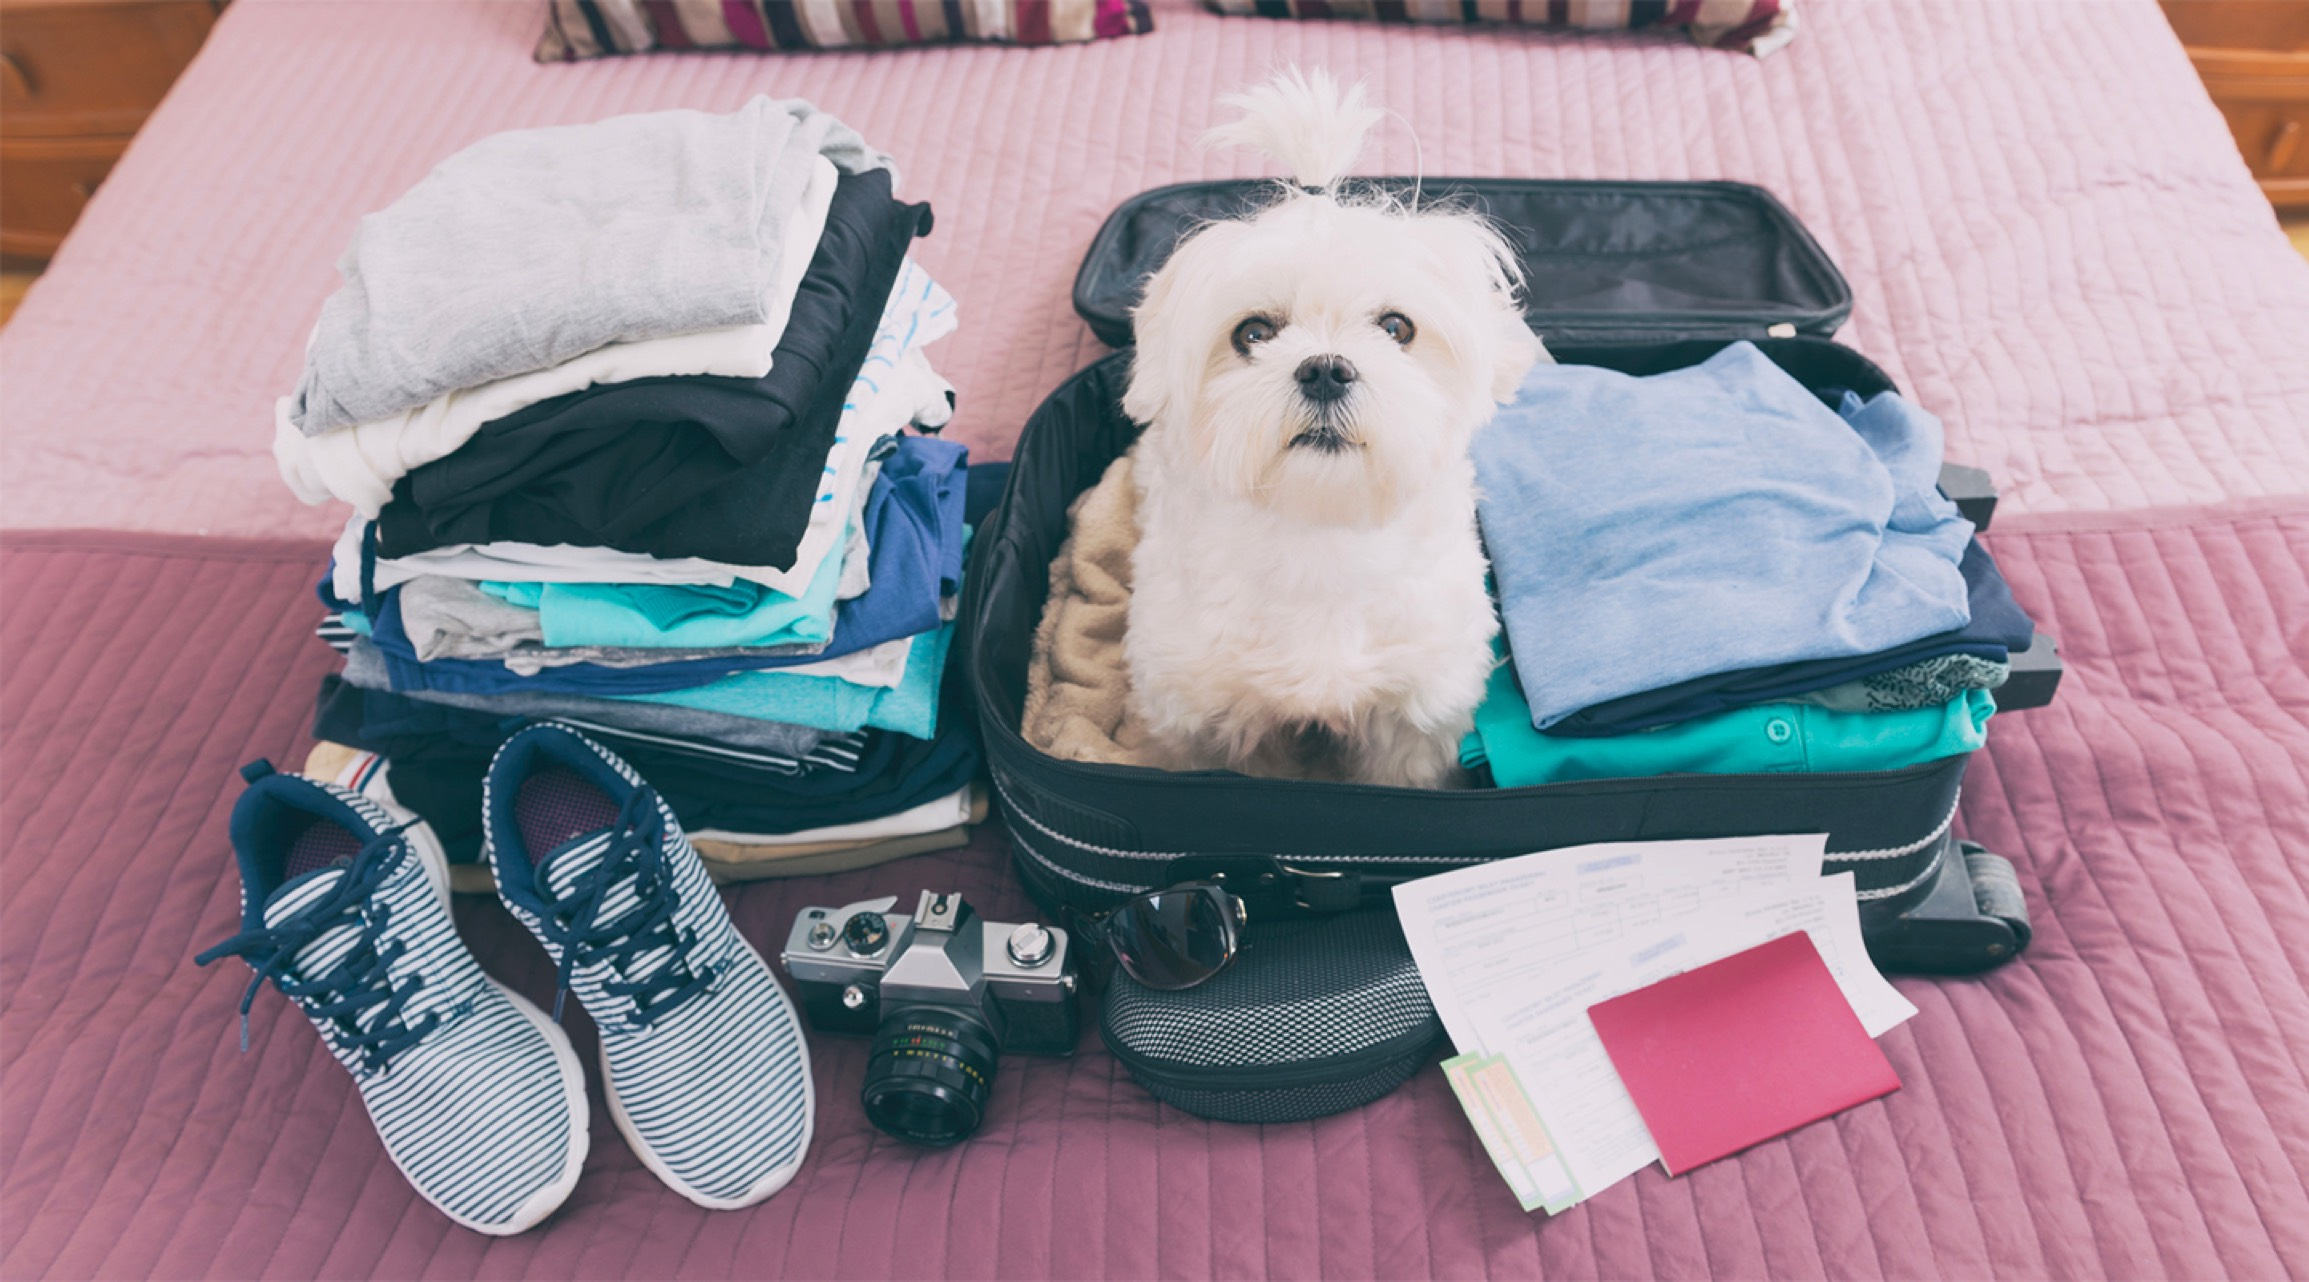 Small white dog sits in an open suitcase on a bed, with clothing and shoes surrounding it